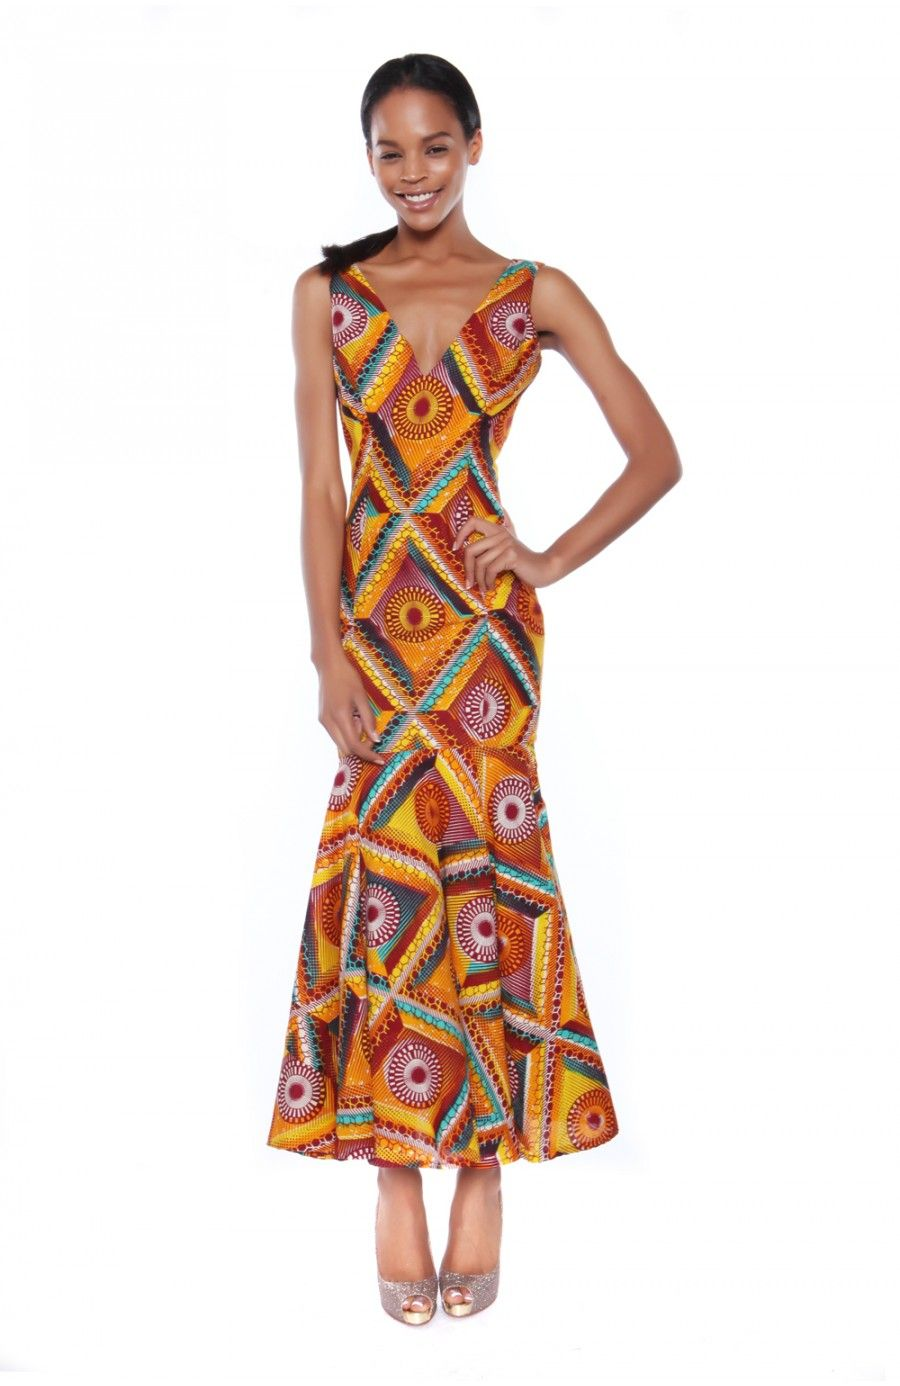 Kekule Maxi Dress in lovely Ankara Print by My Asho Market  #MyAsho #Maxi #MaxiDress #Ankara #AnkaraDress #africanprint #AfricanPrintDress #AfricanWaxPrint #Ghana